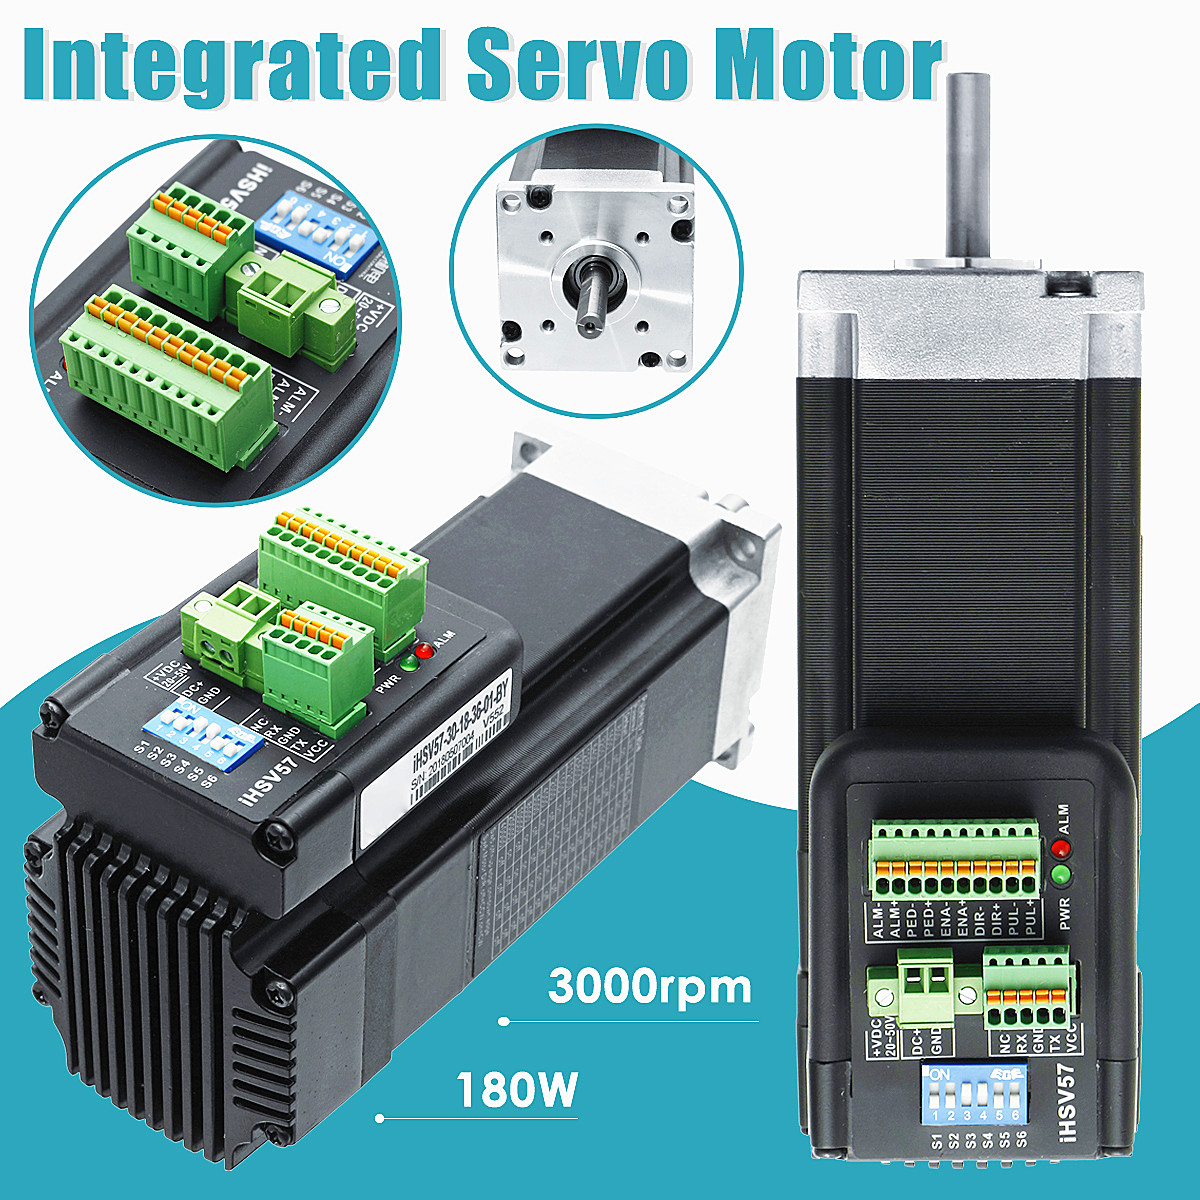 180W 3000rpm 57 Integrated Servo Motor DC36V iHSV57-30-18-36